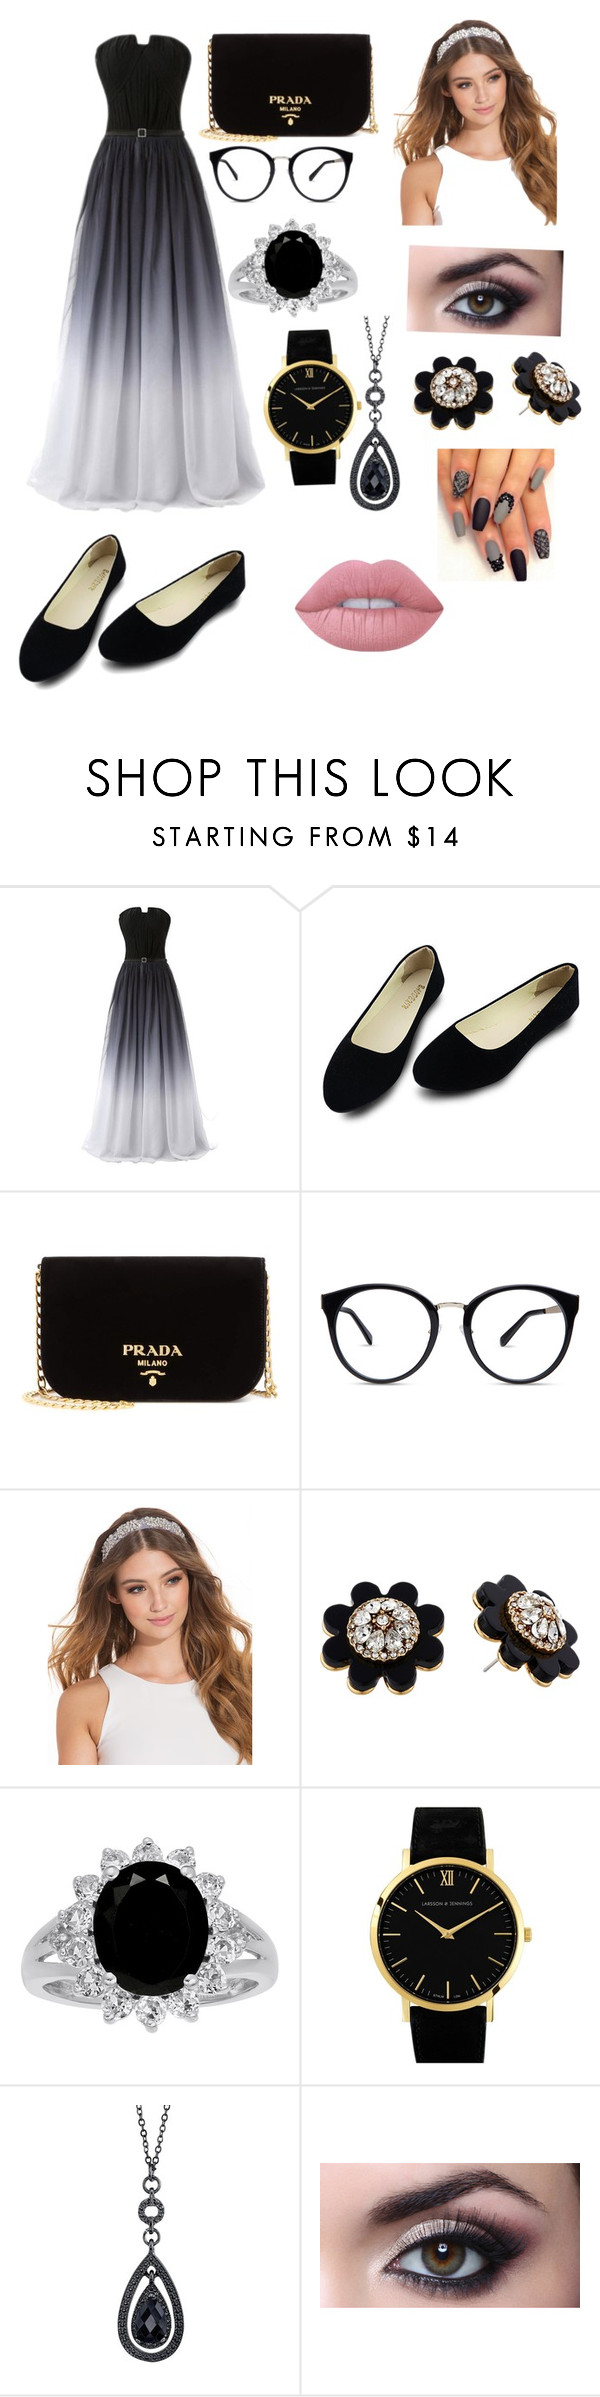 """""""Untitled #50"""" by ganaal ❤ liked on Polyvore featuring Prada, JFR, Kate Spade, Larsson & Jennings, 1928 and Lime Crime"""